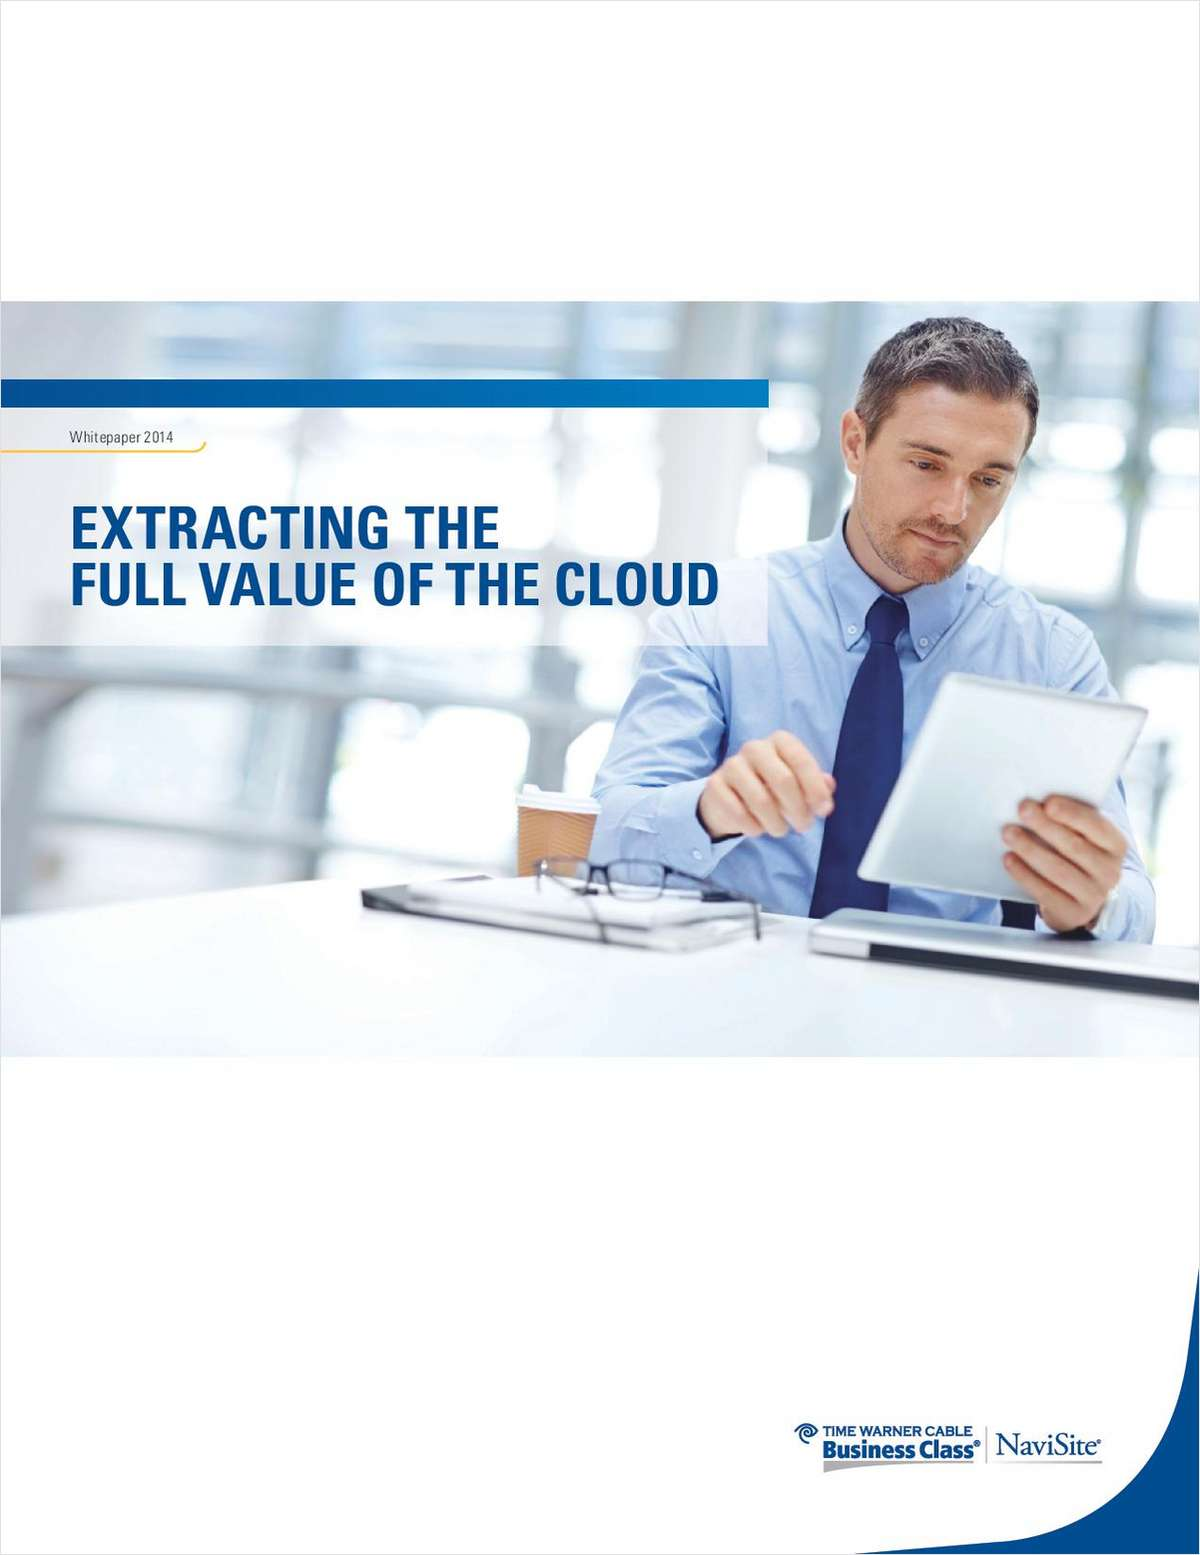 Extracting the Full Value of the Cloud